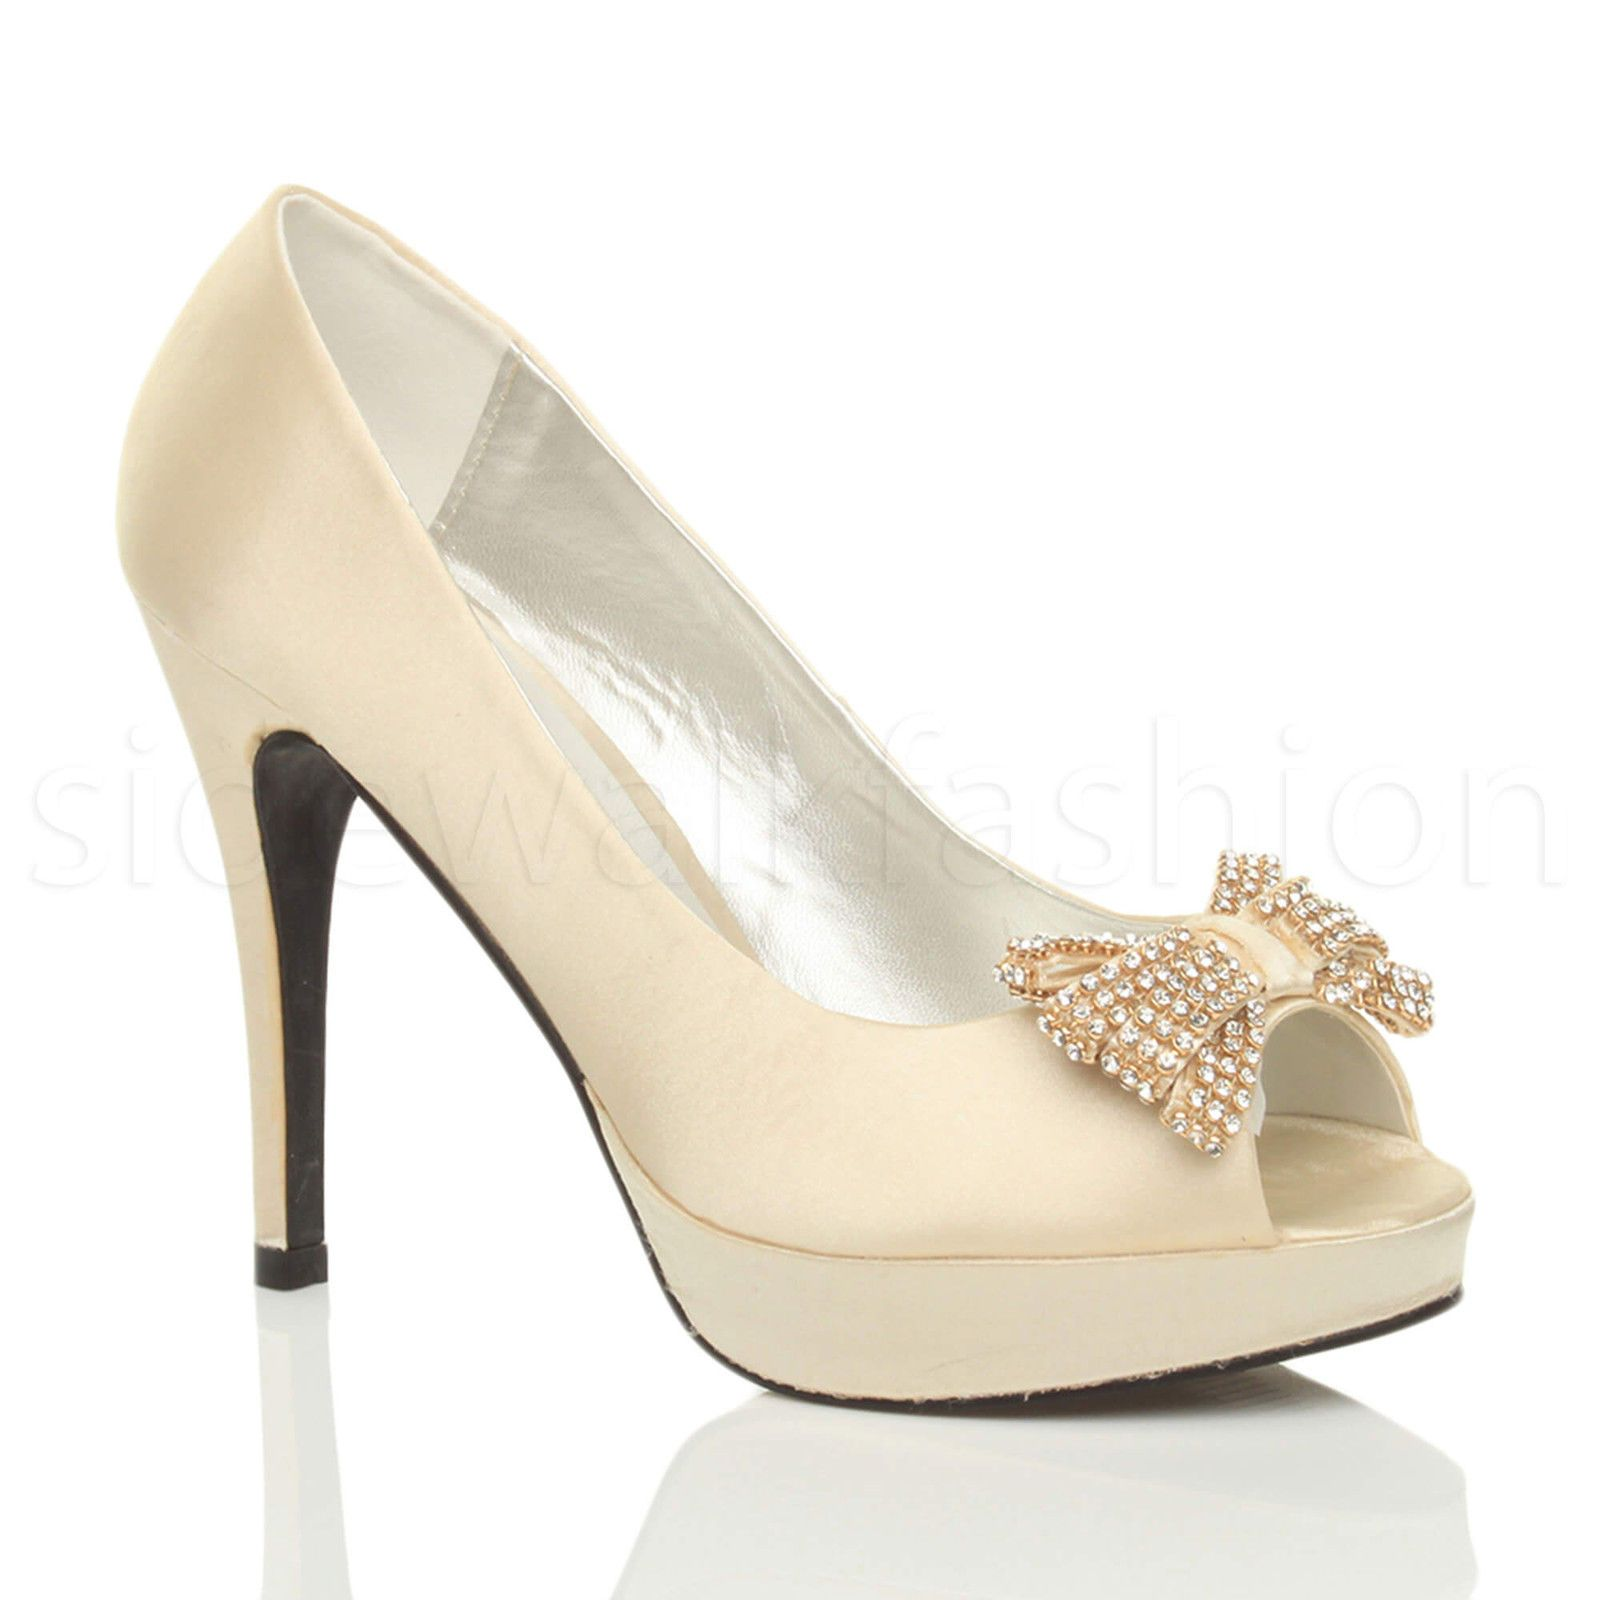 WOMENS LADIES HIGH HEEL BOW WEDDING EVENING PEEP TOE SHOES PLATFORM SANDALS SIZE